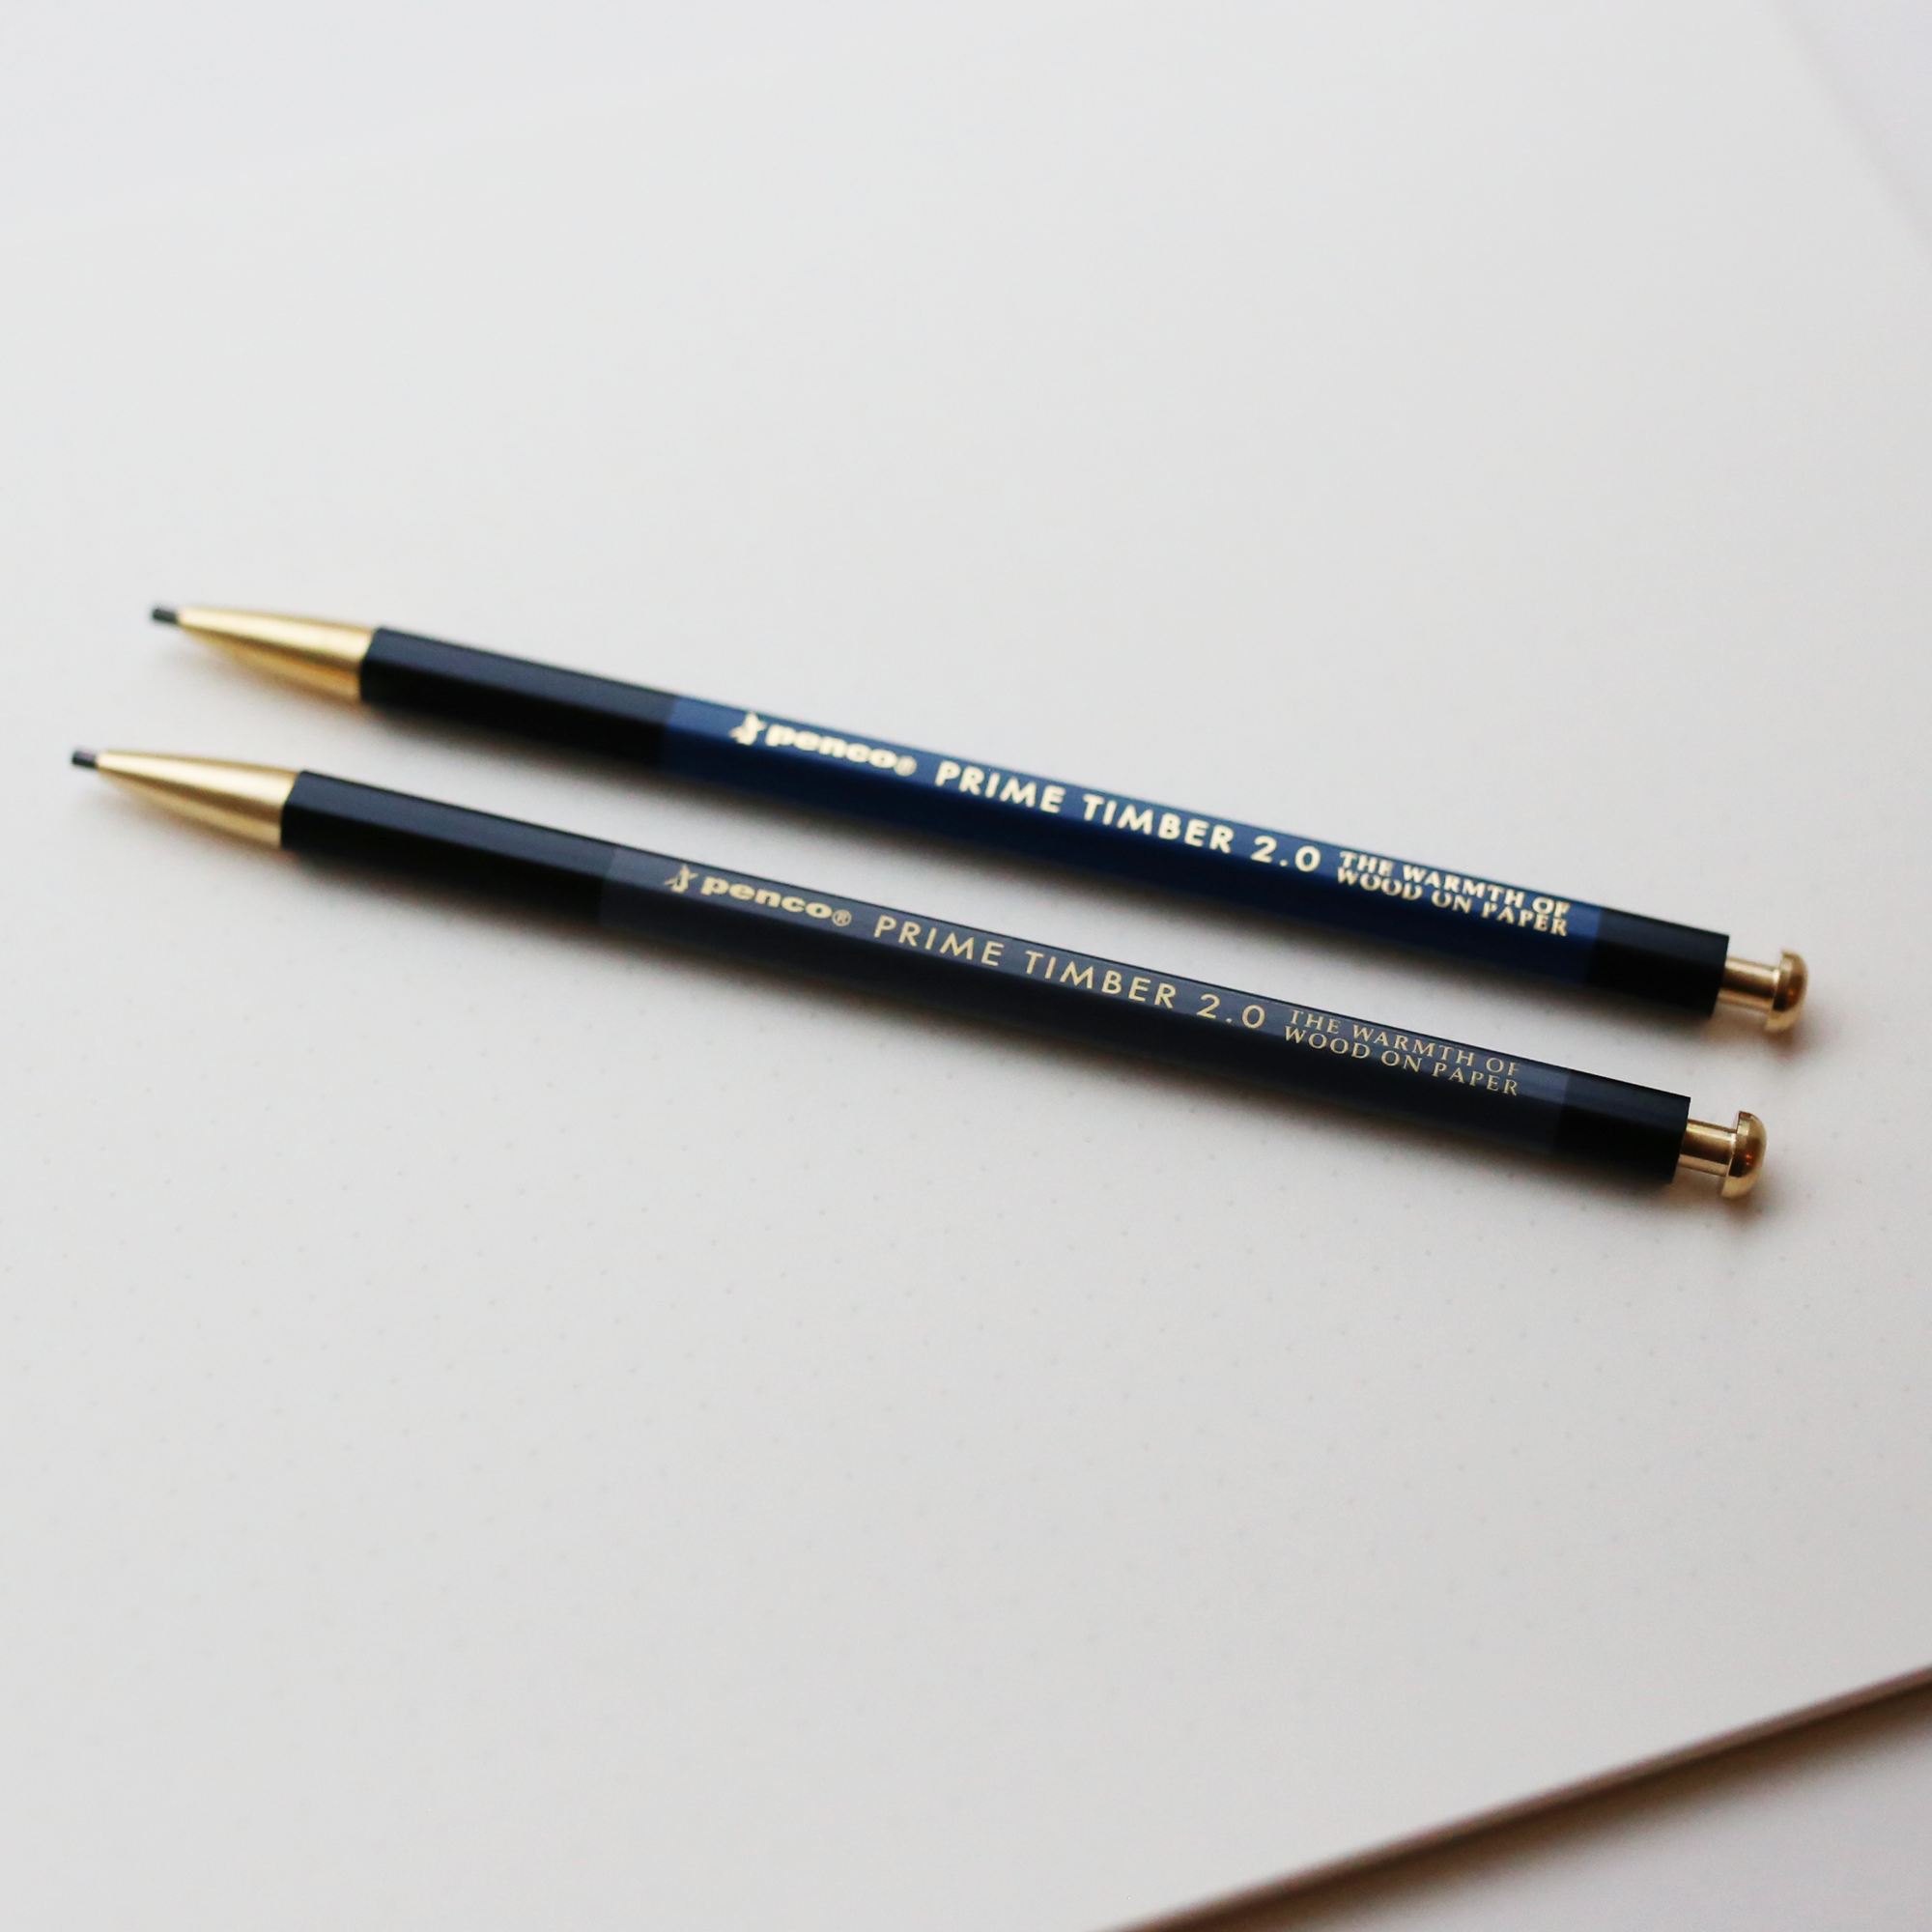 PRIME TIMBER PENCIL 2.0 mm // BRASS BLACK